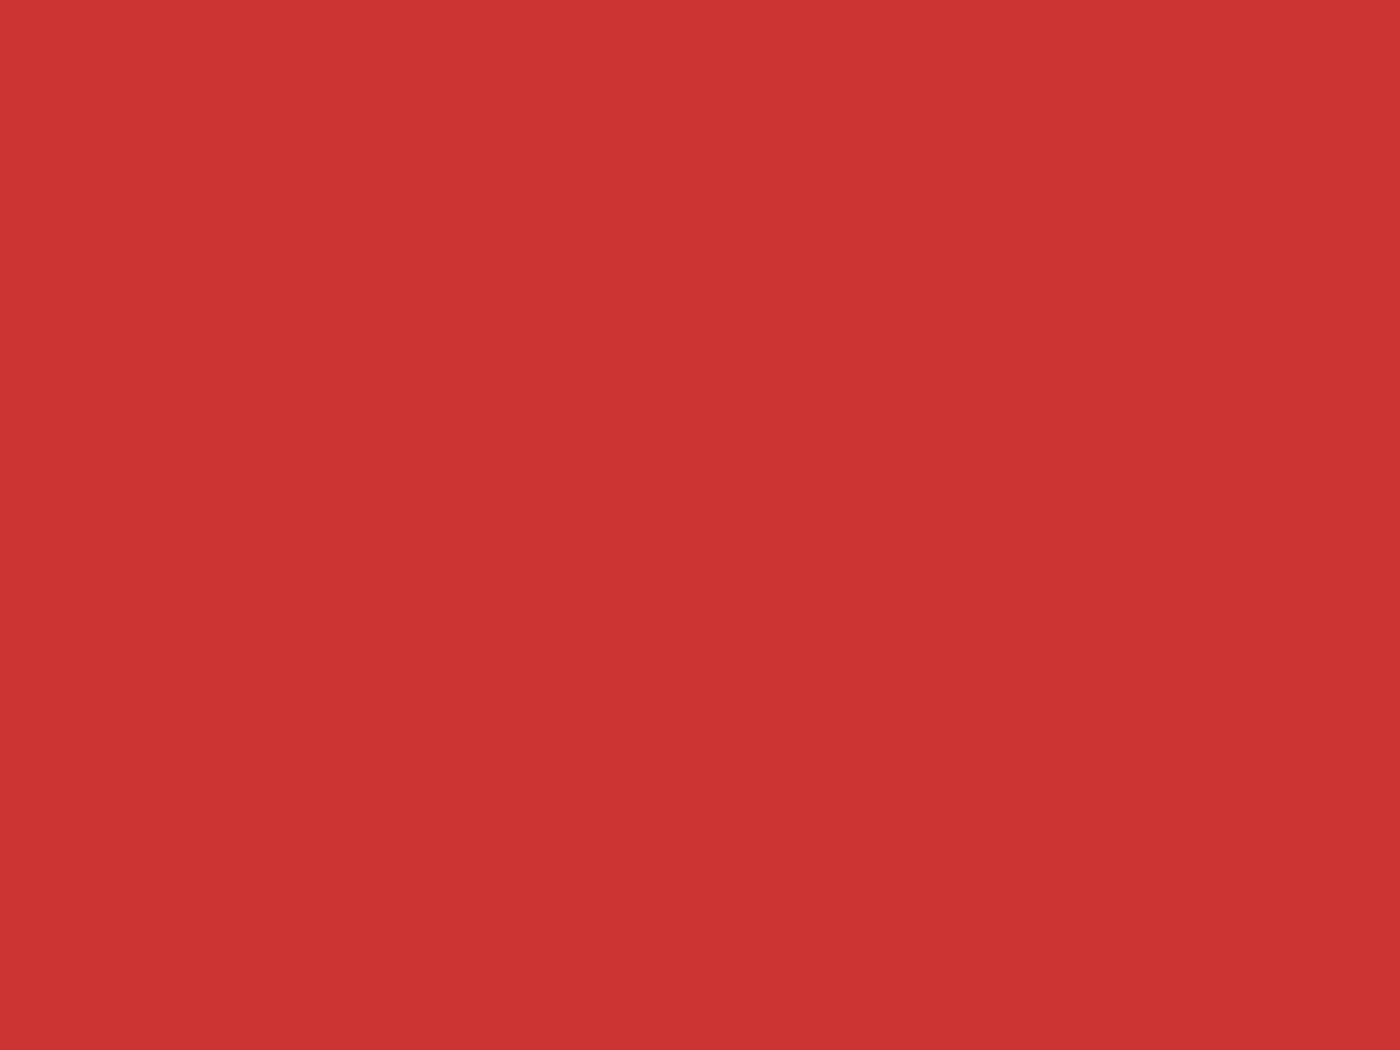 1400x1050 Persian Red Solid Color Background